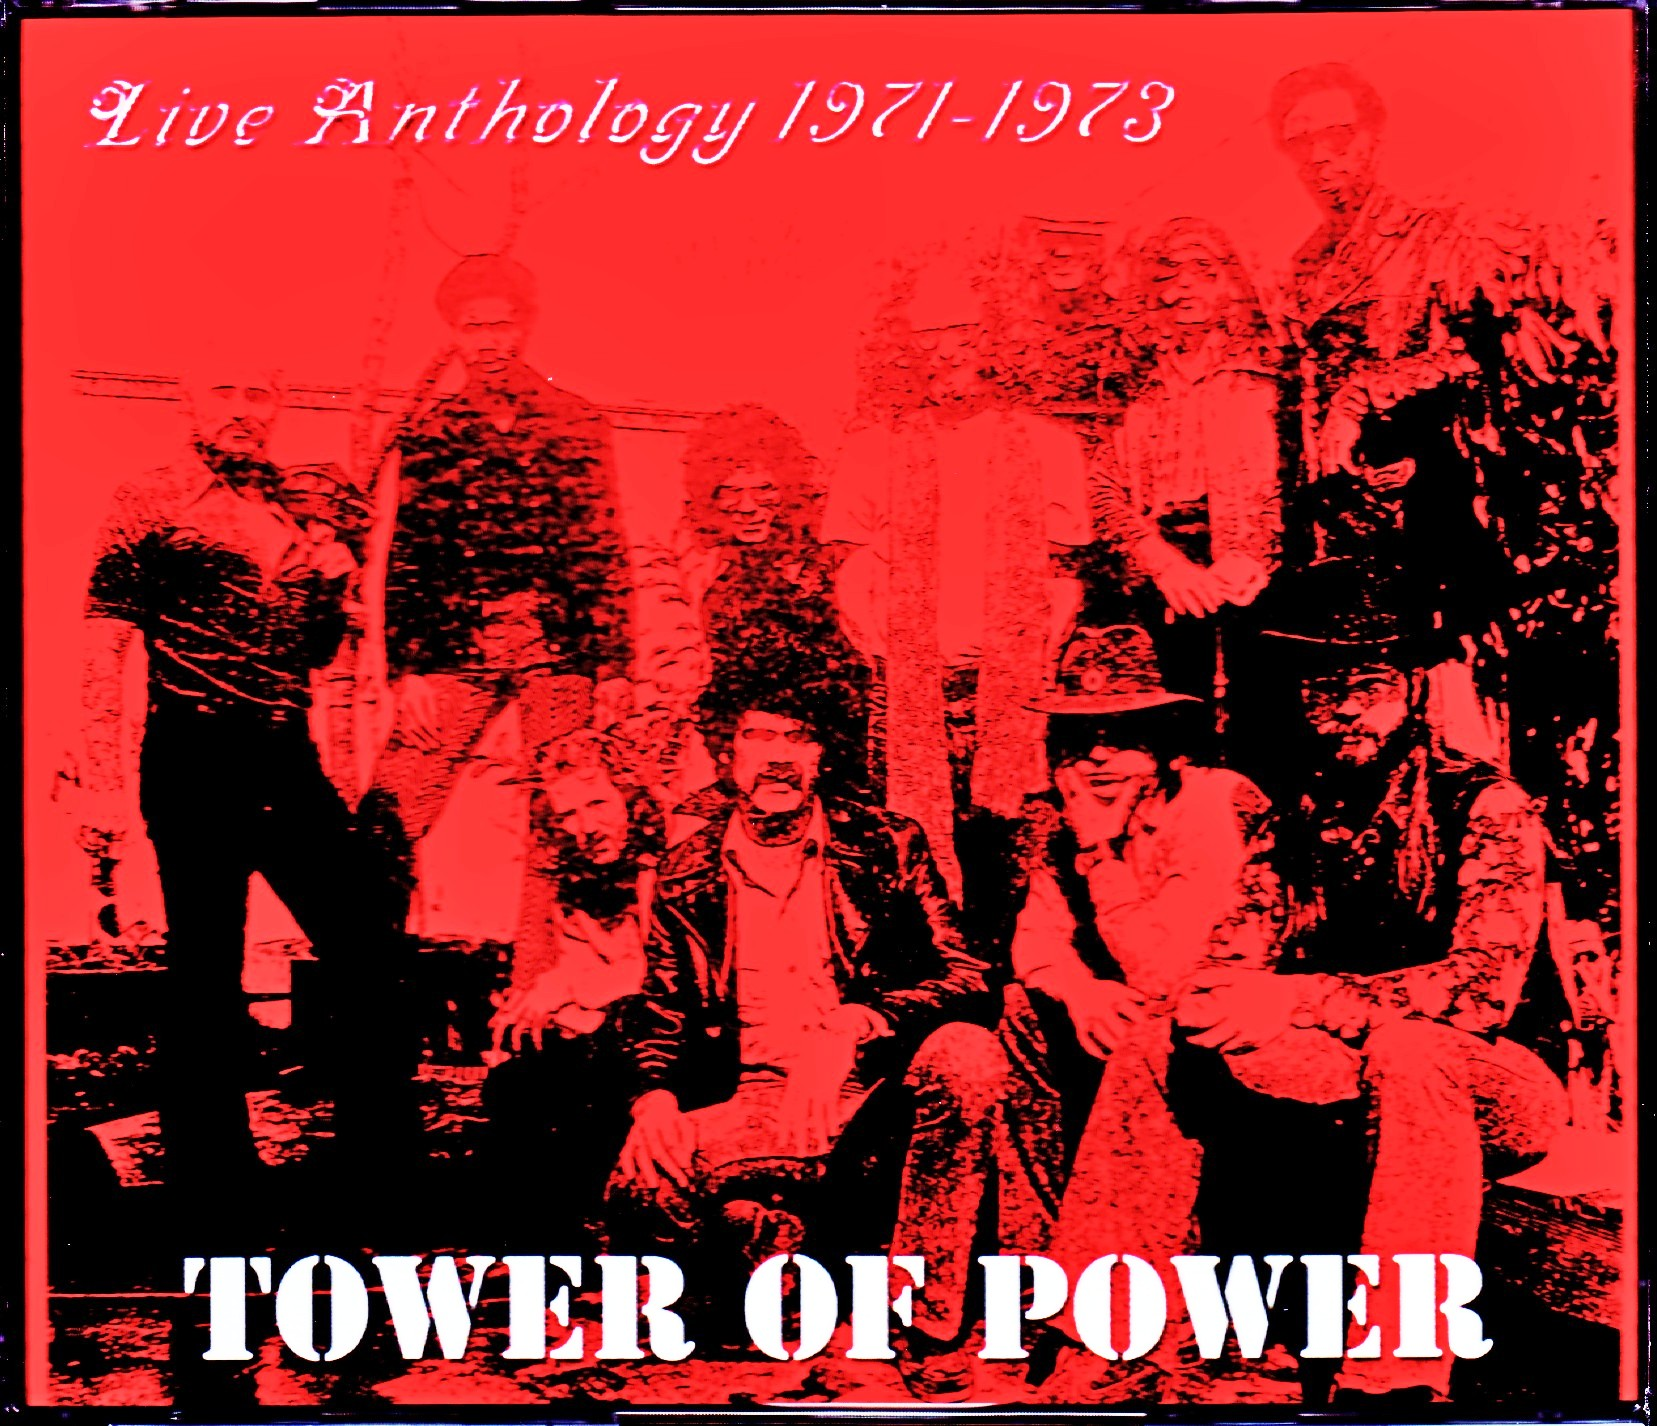 Tower of Power タワー・オブ・パワー/Live Anthology 1971-1973